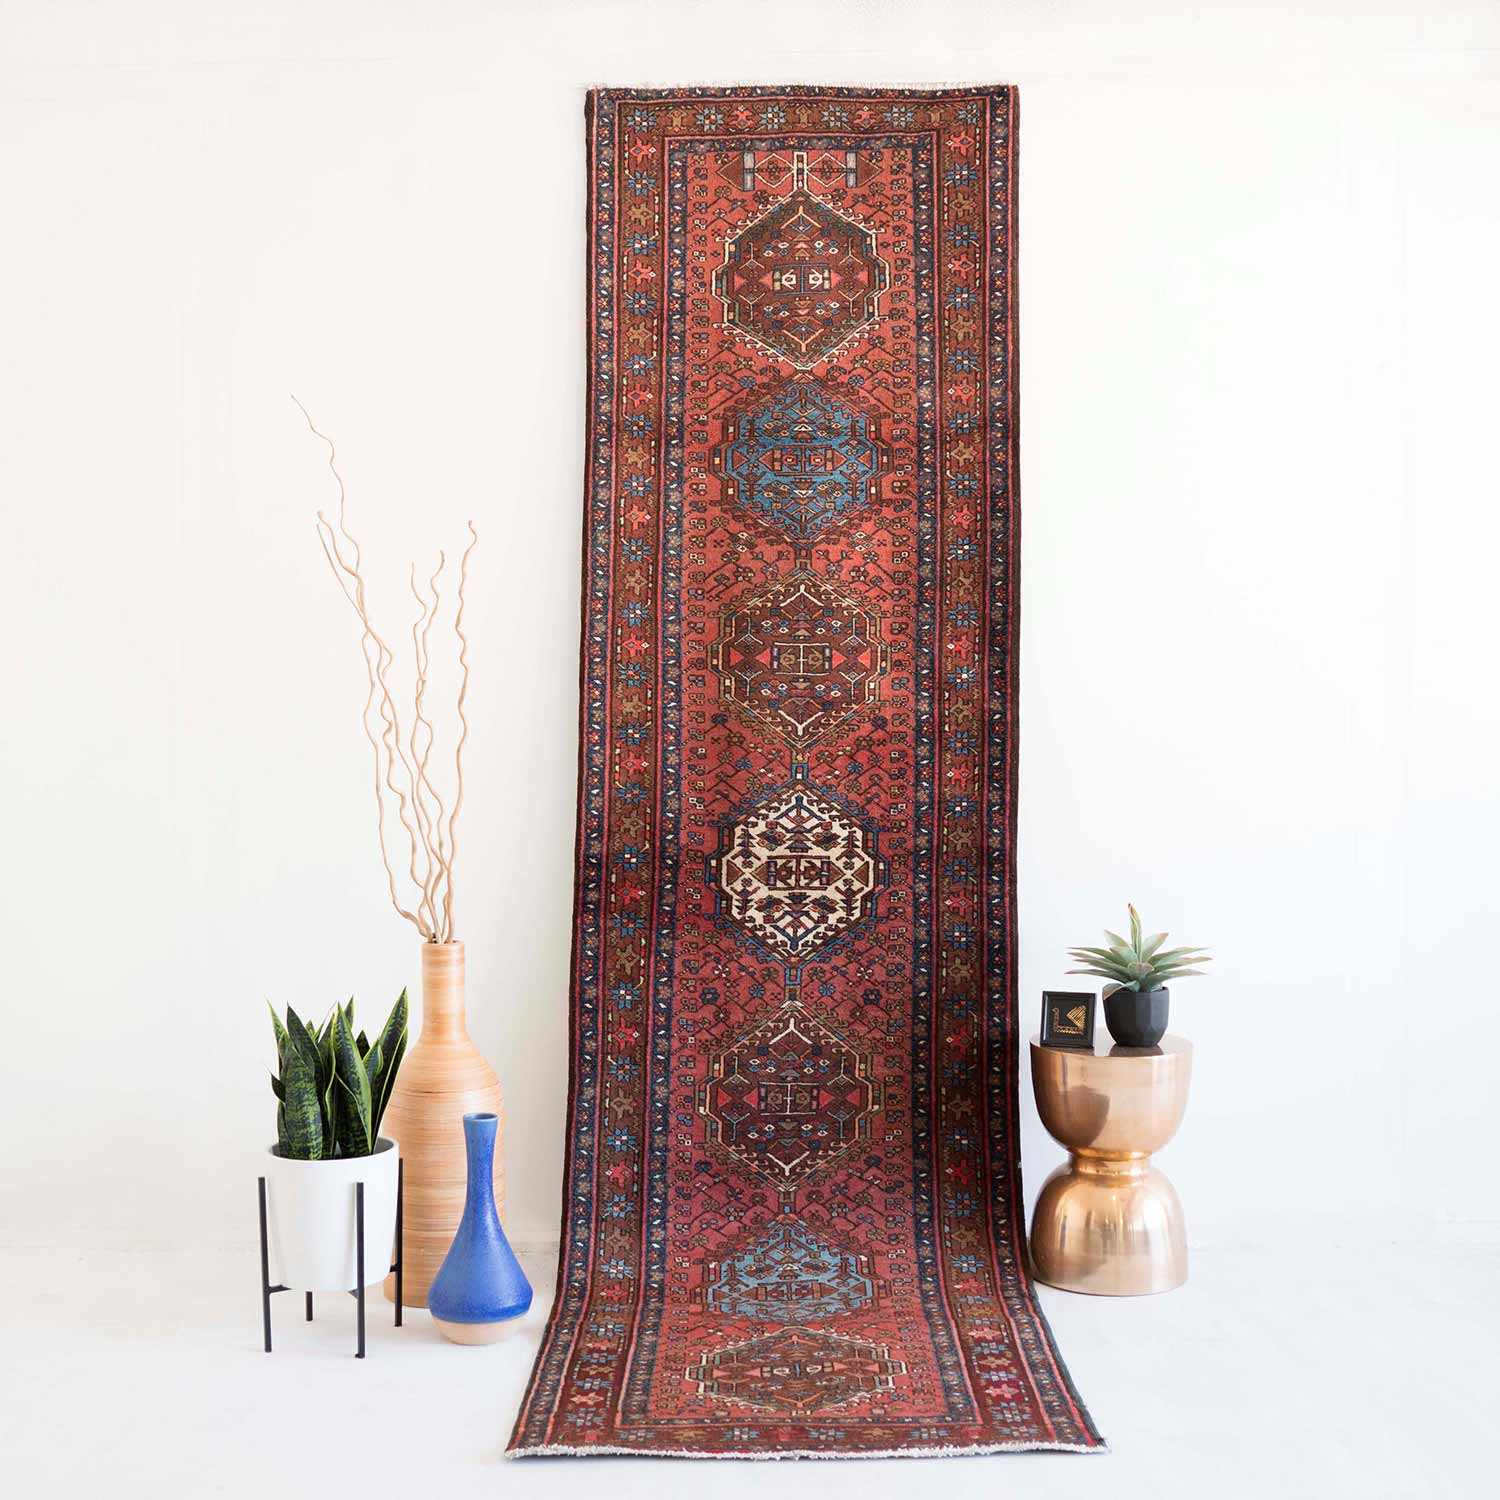 NO. 0042   / PERSIAN (HERIS) / 80 YEARS / 10'8 x 2'10 FT